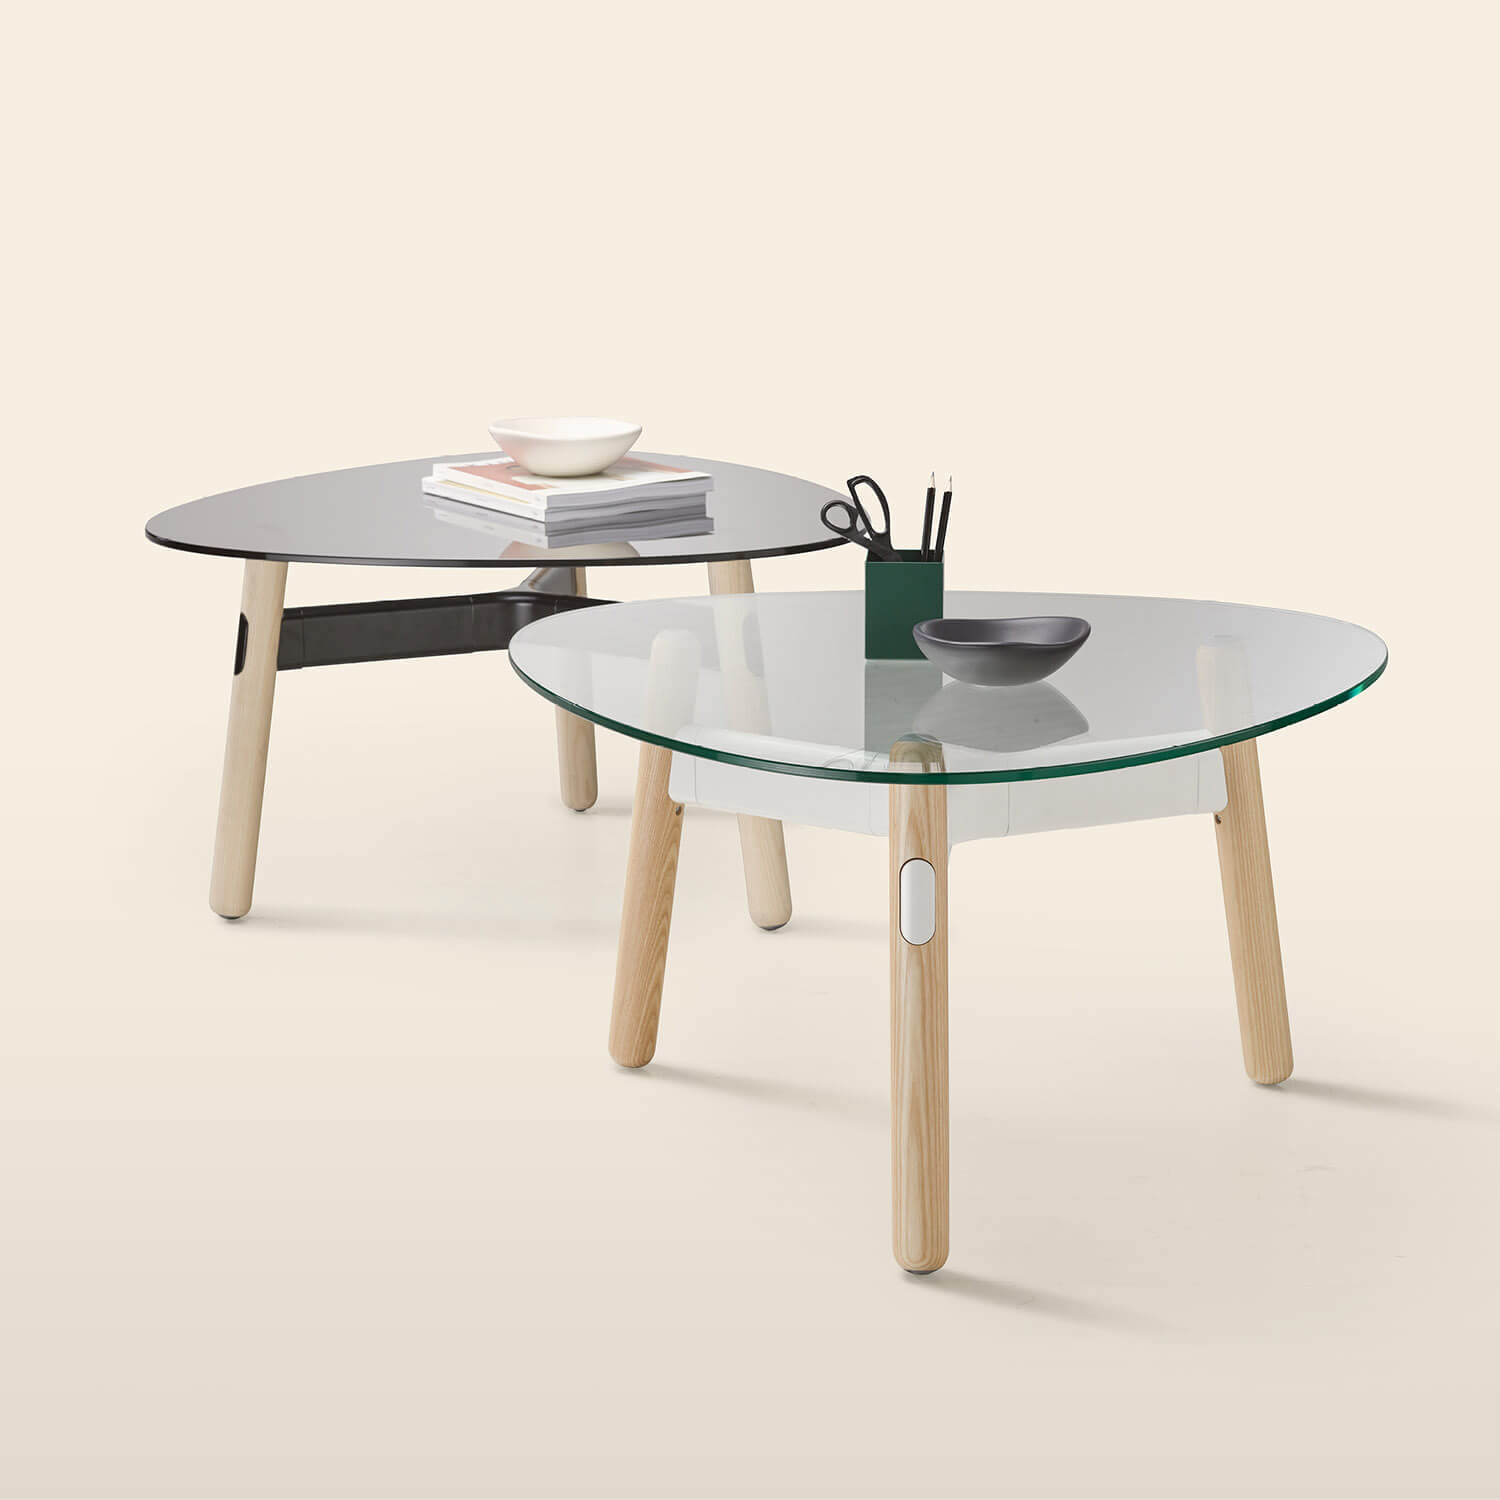 Okidoki coffee table (1)